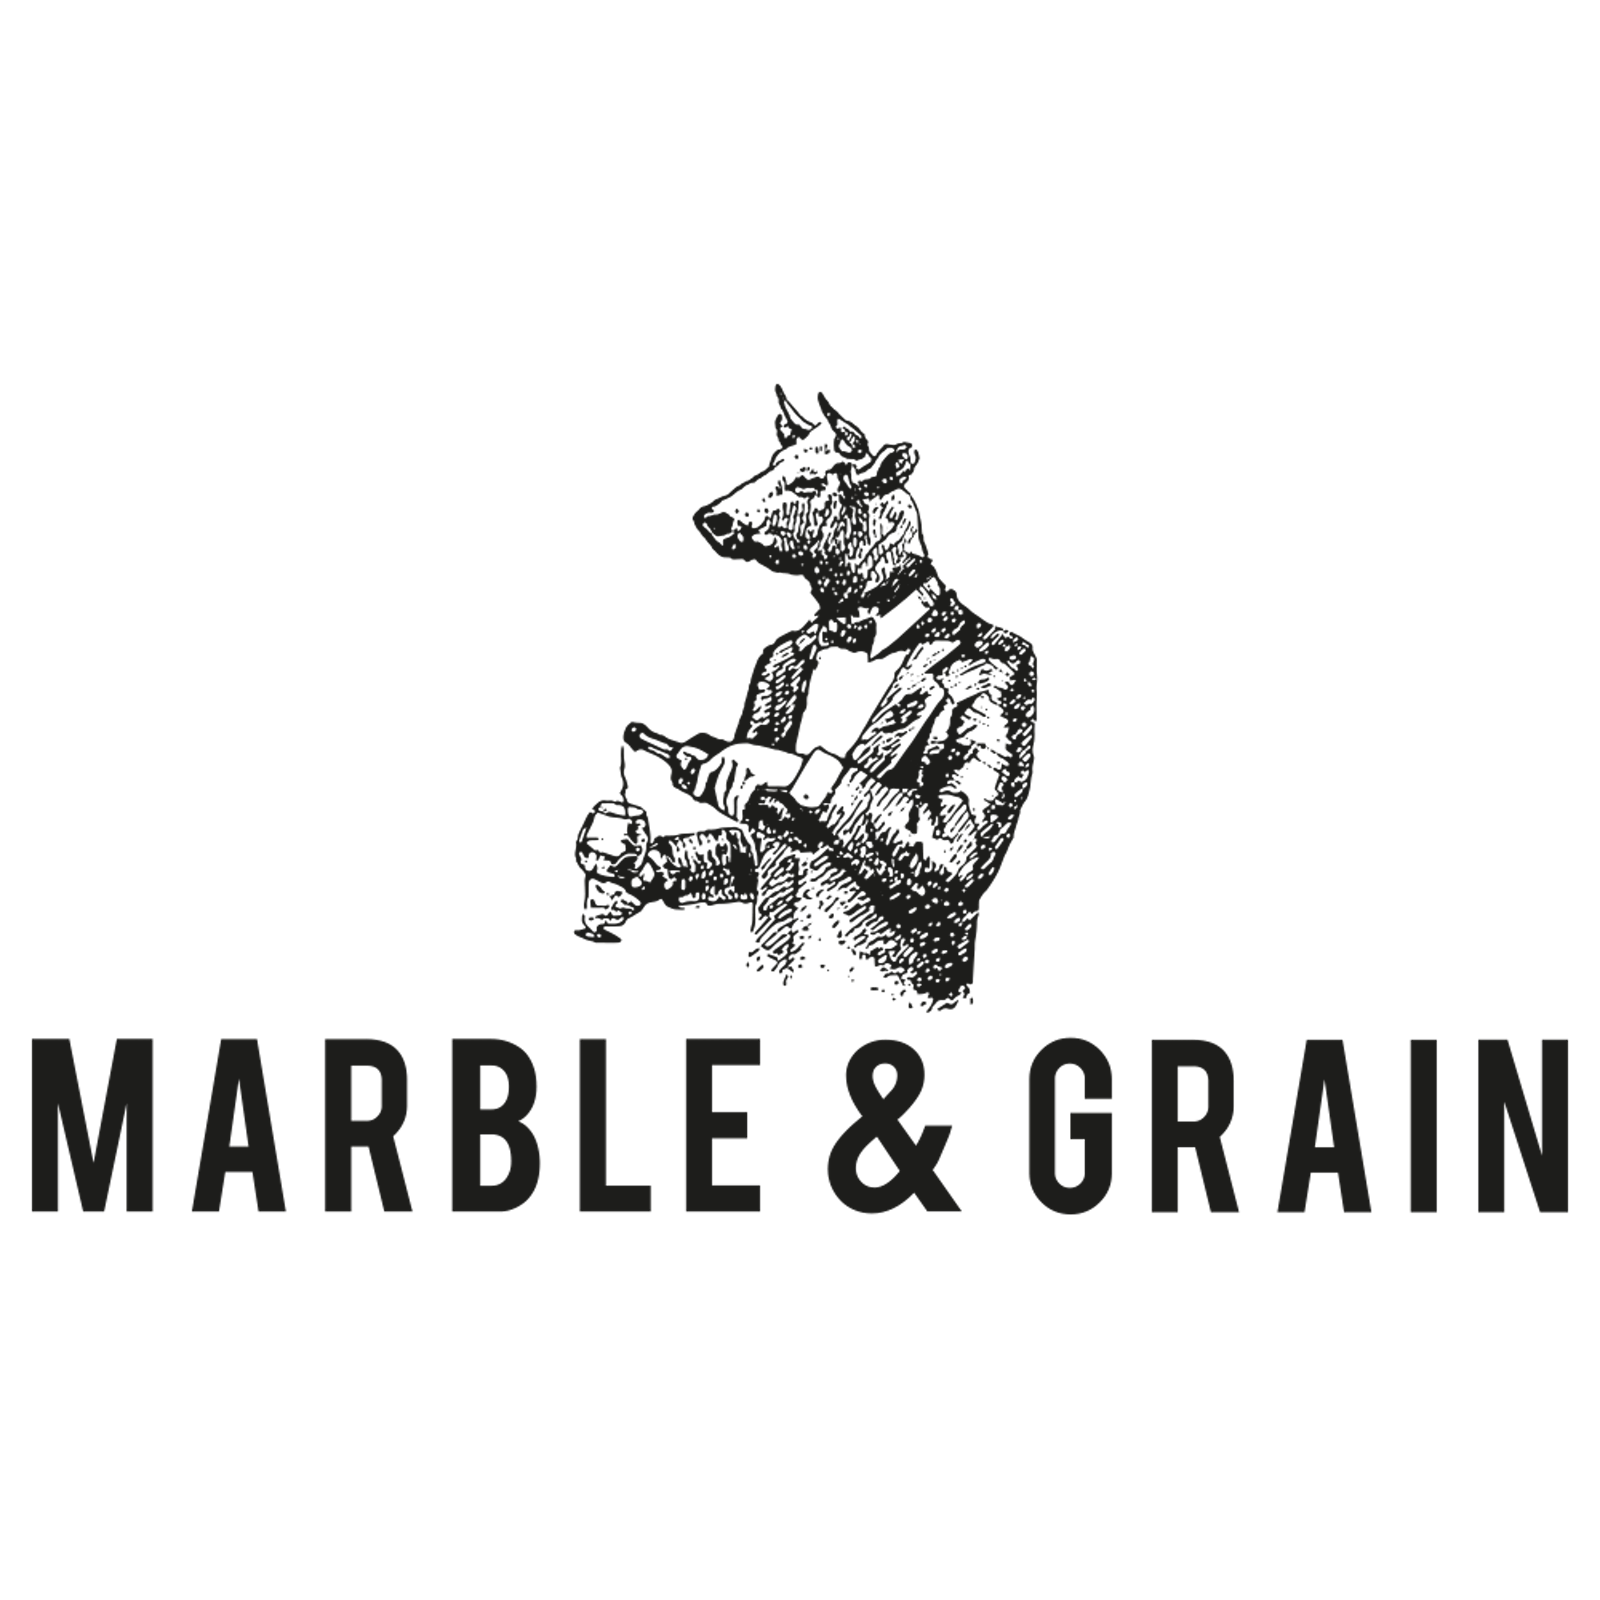 Marble and Grain Logo